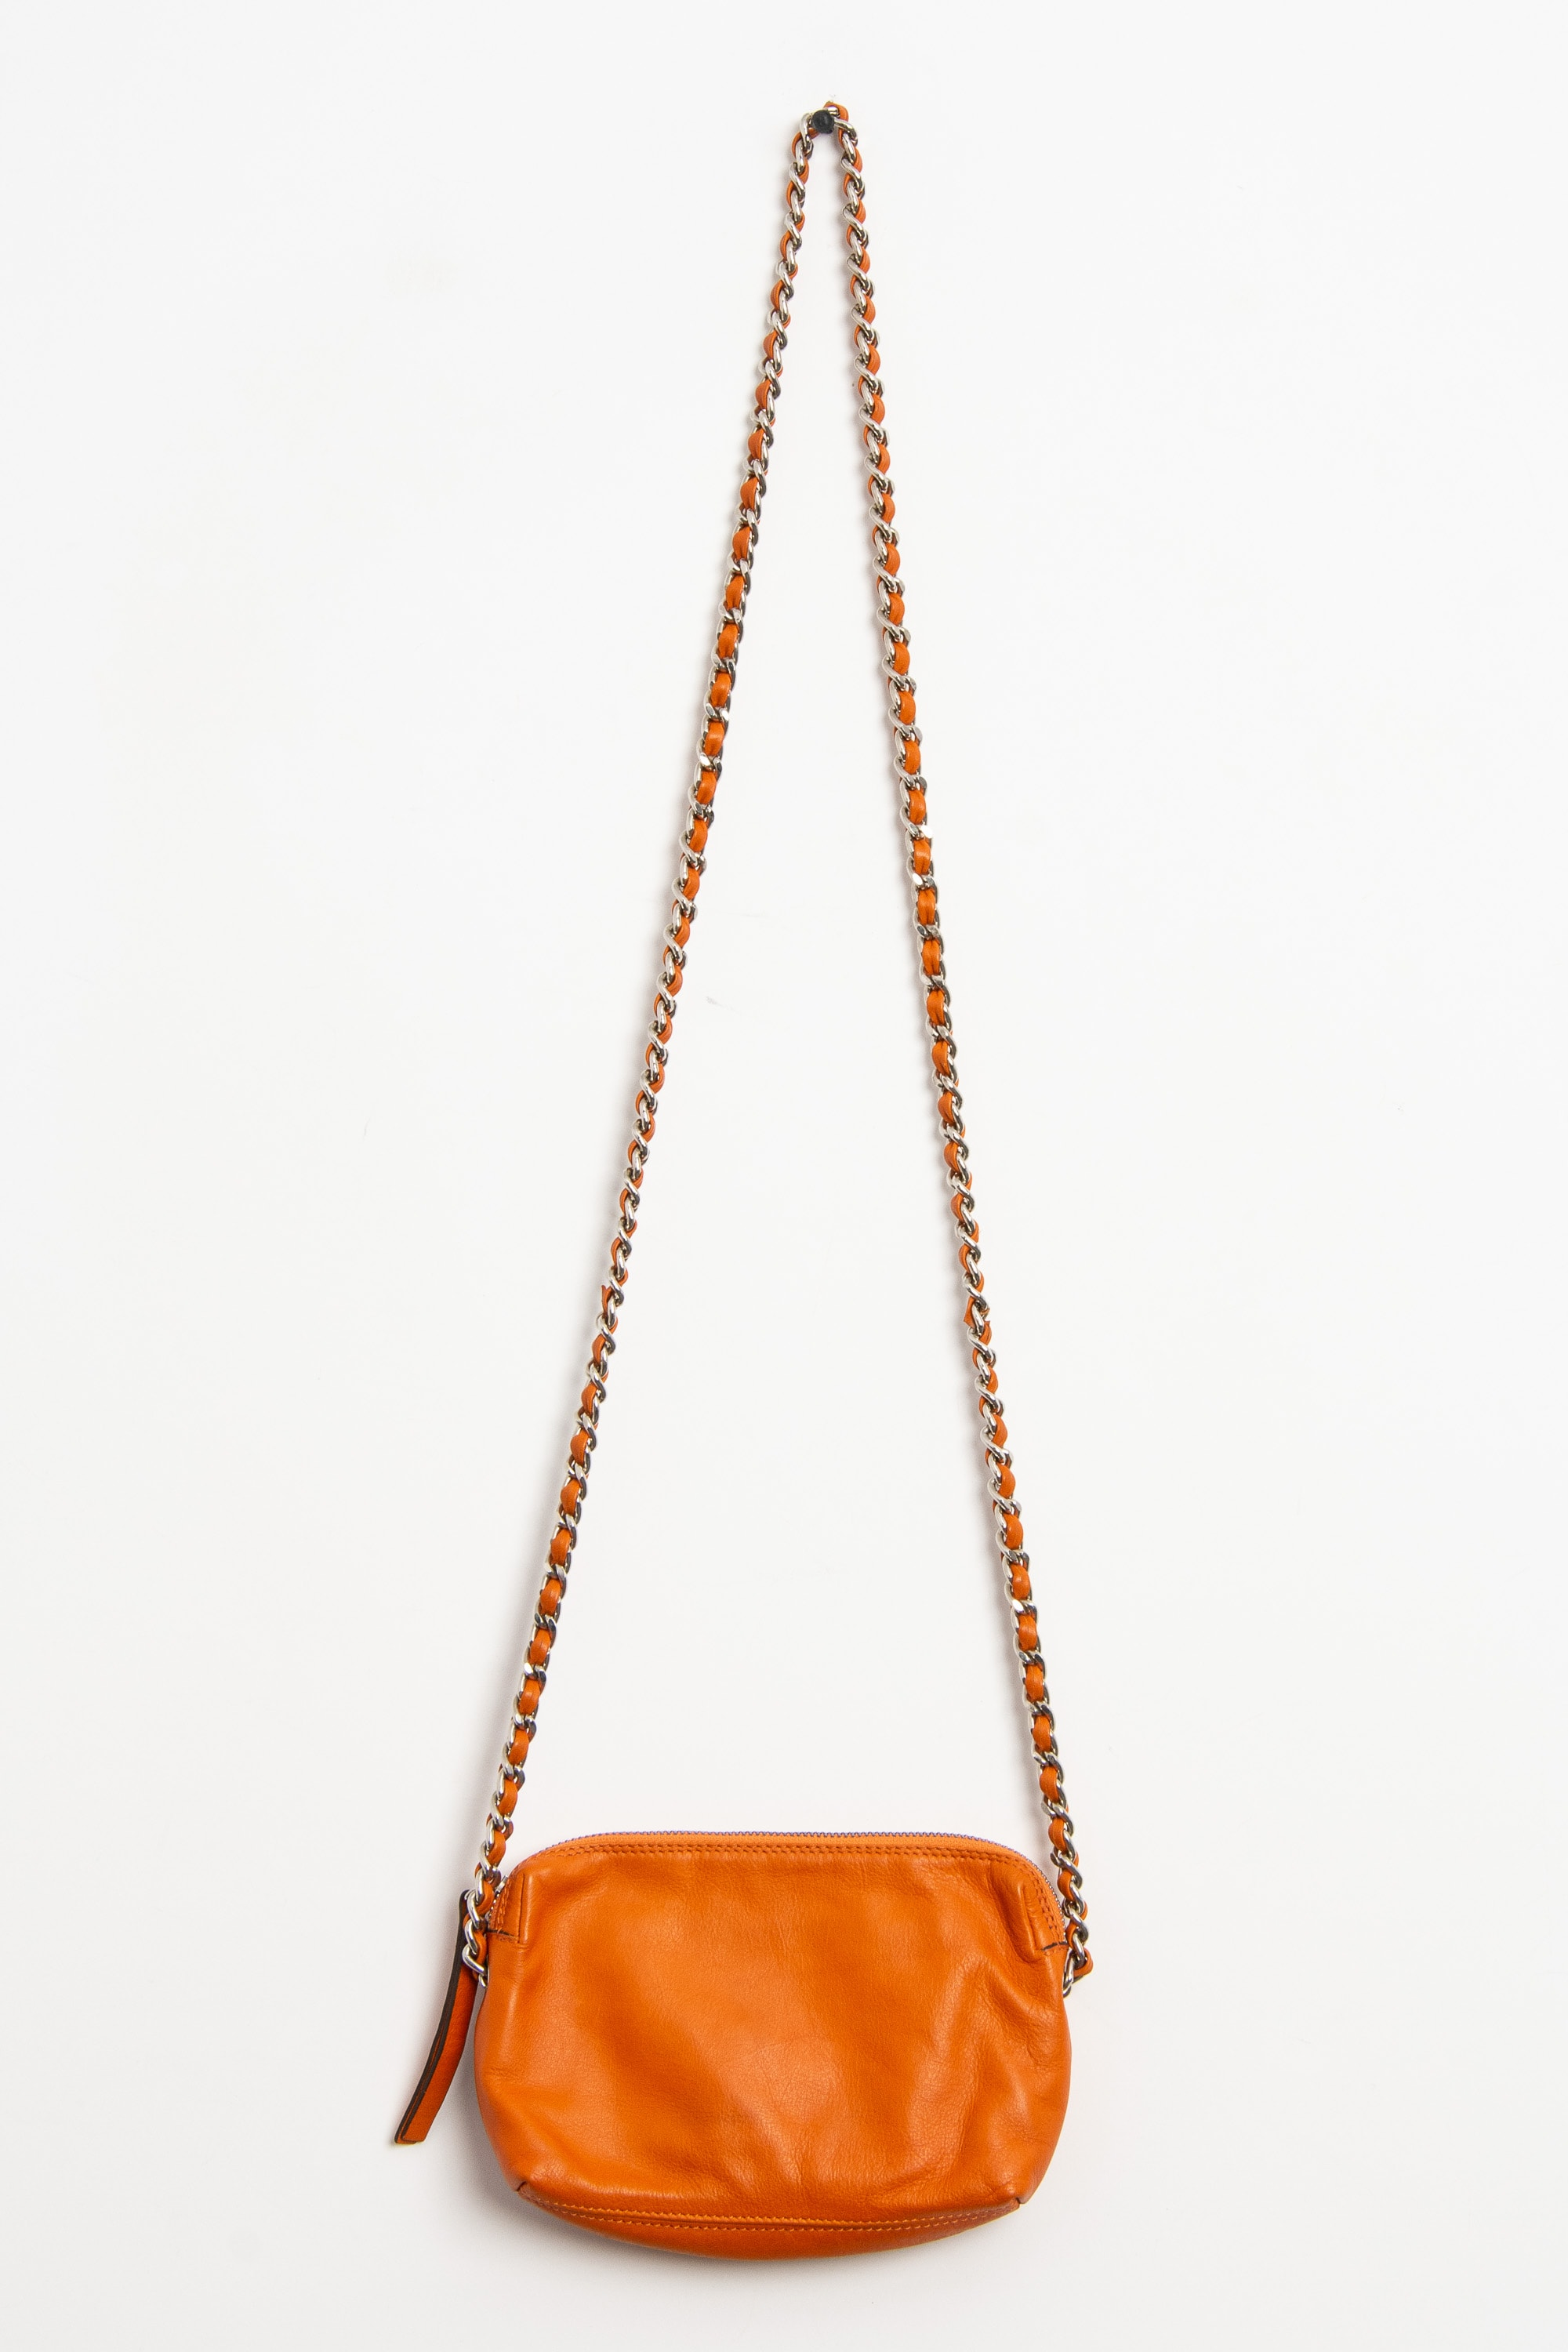 Abro Tasche Orange Gr.